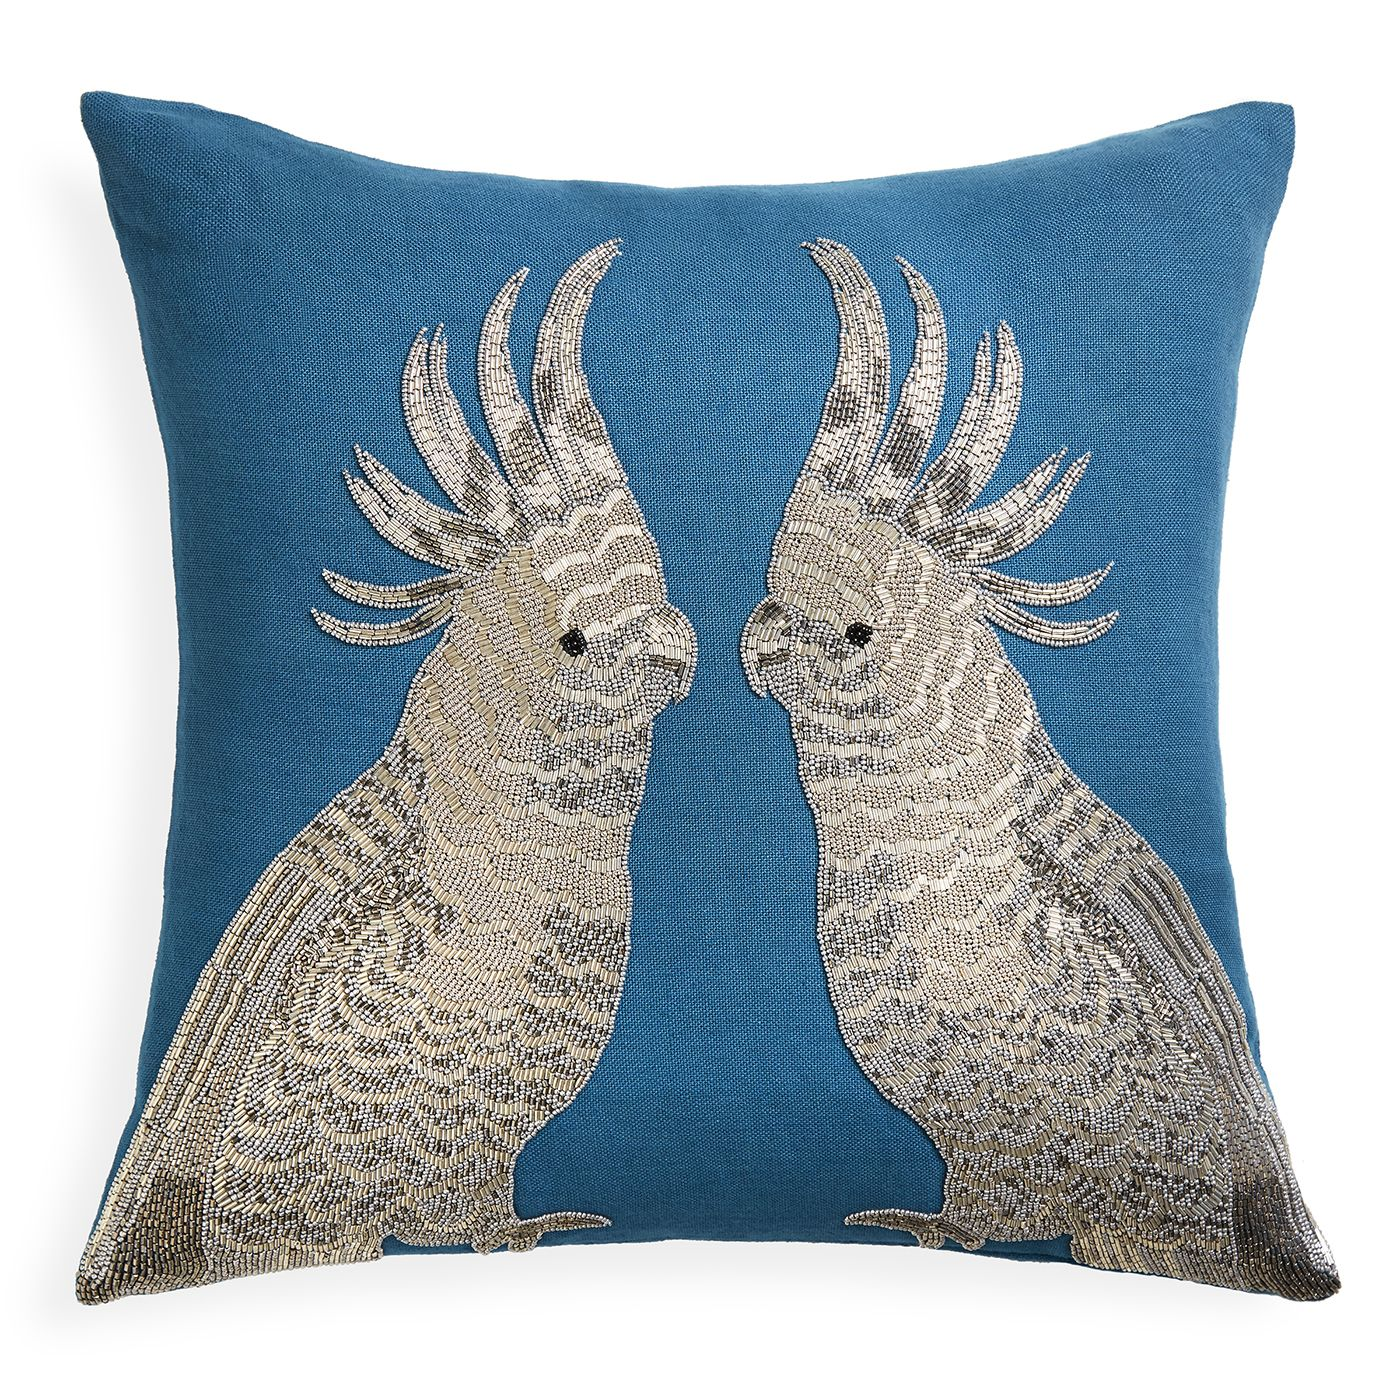 Sofa Safari.Glam and surreal, our Zoology Pillows add the perfect punctuation to your pillowscape. Intricate silver beadwork embroidered on turquoise linen